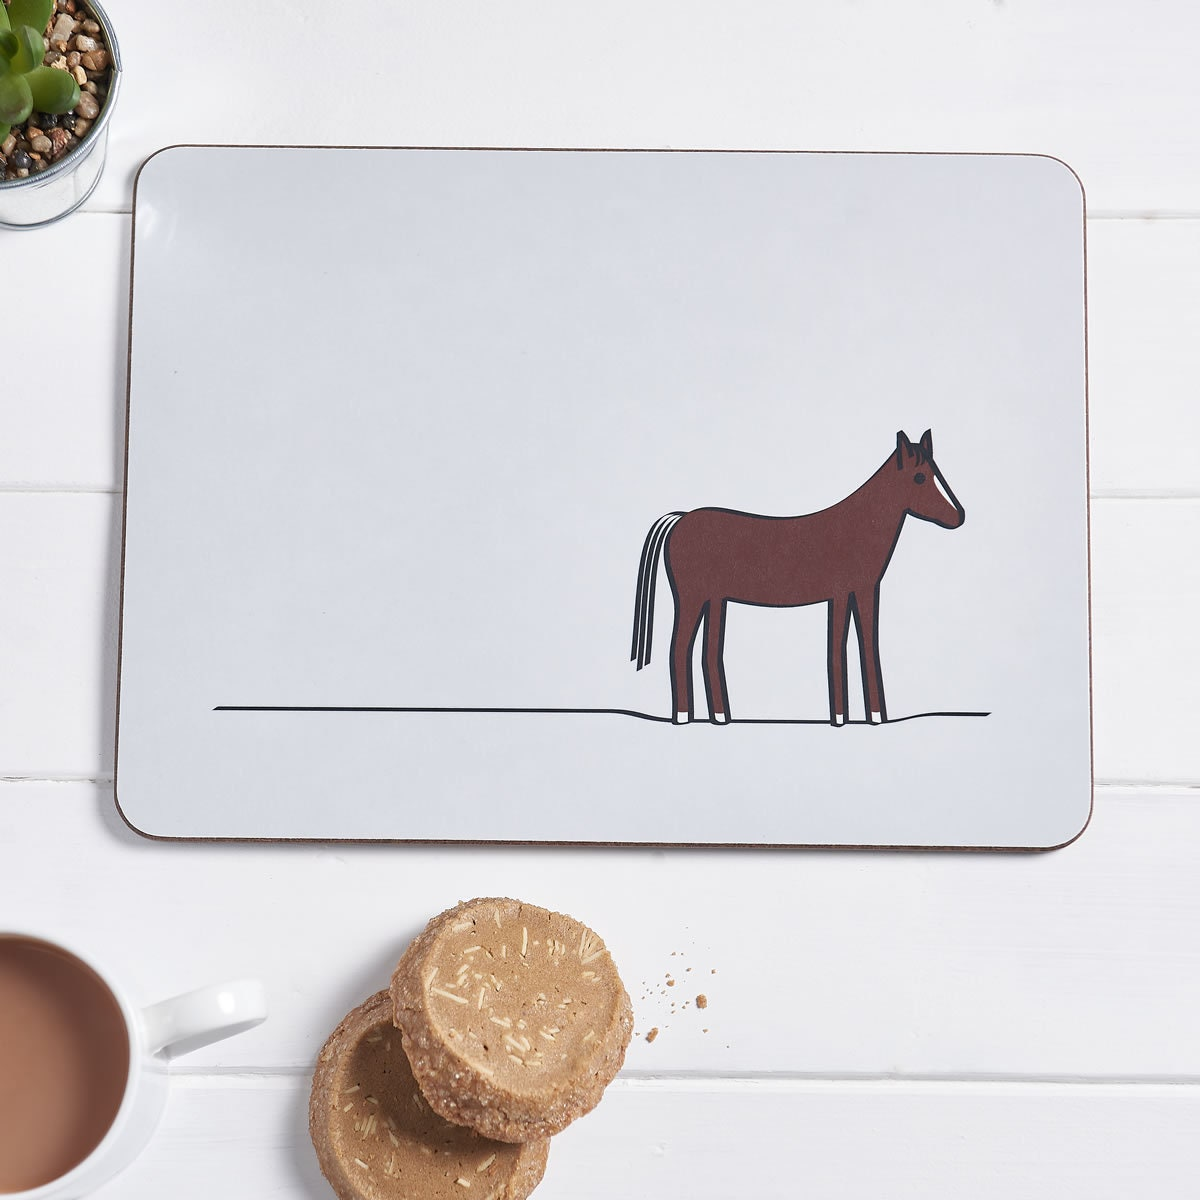 Horse Placemat Horse Gifts Animal Placemat Horse Decor | Etsy